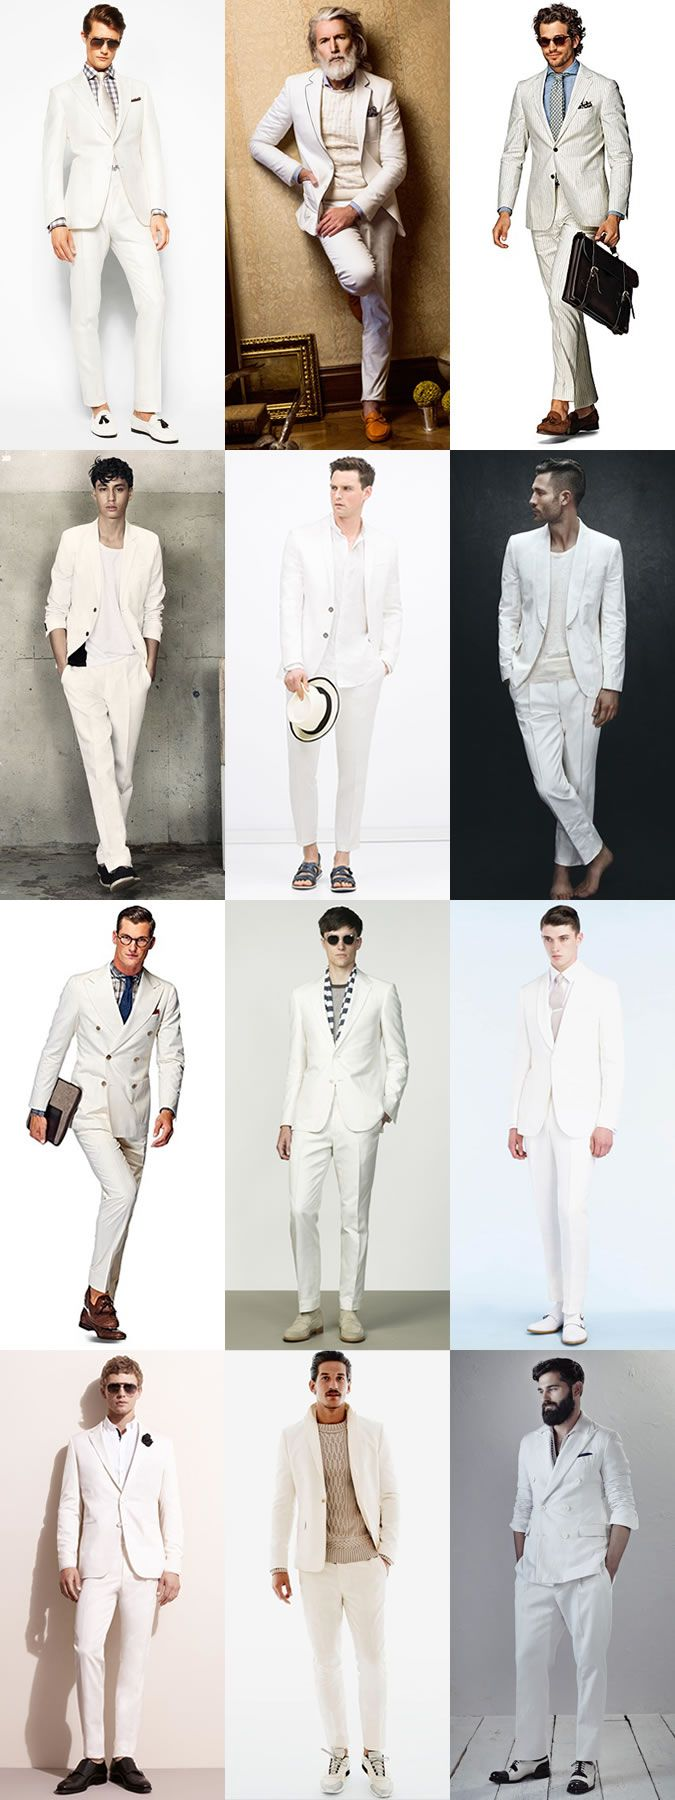 Ways To Wear White-On-White: The Full Suit Lookbook Inspiration